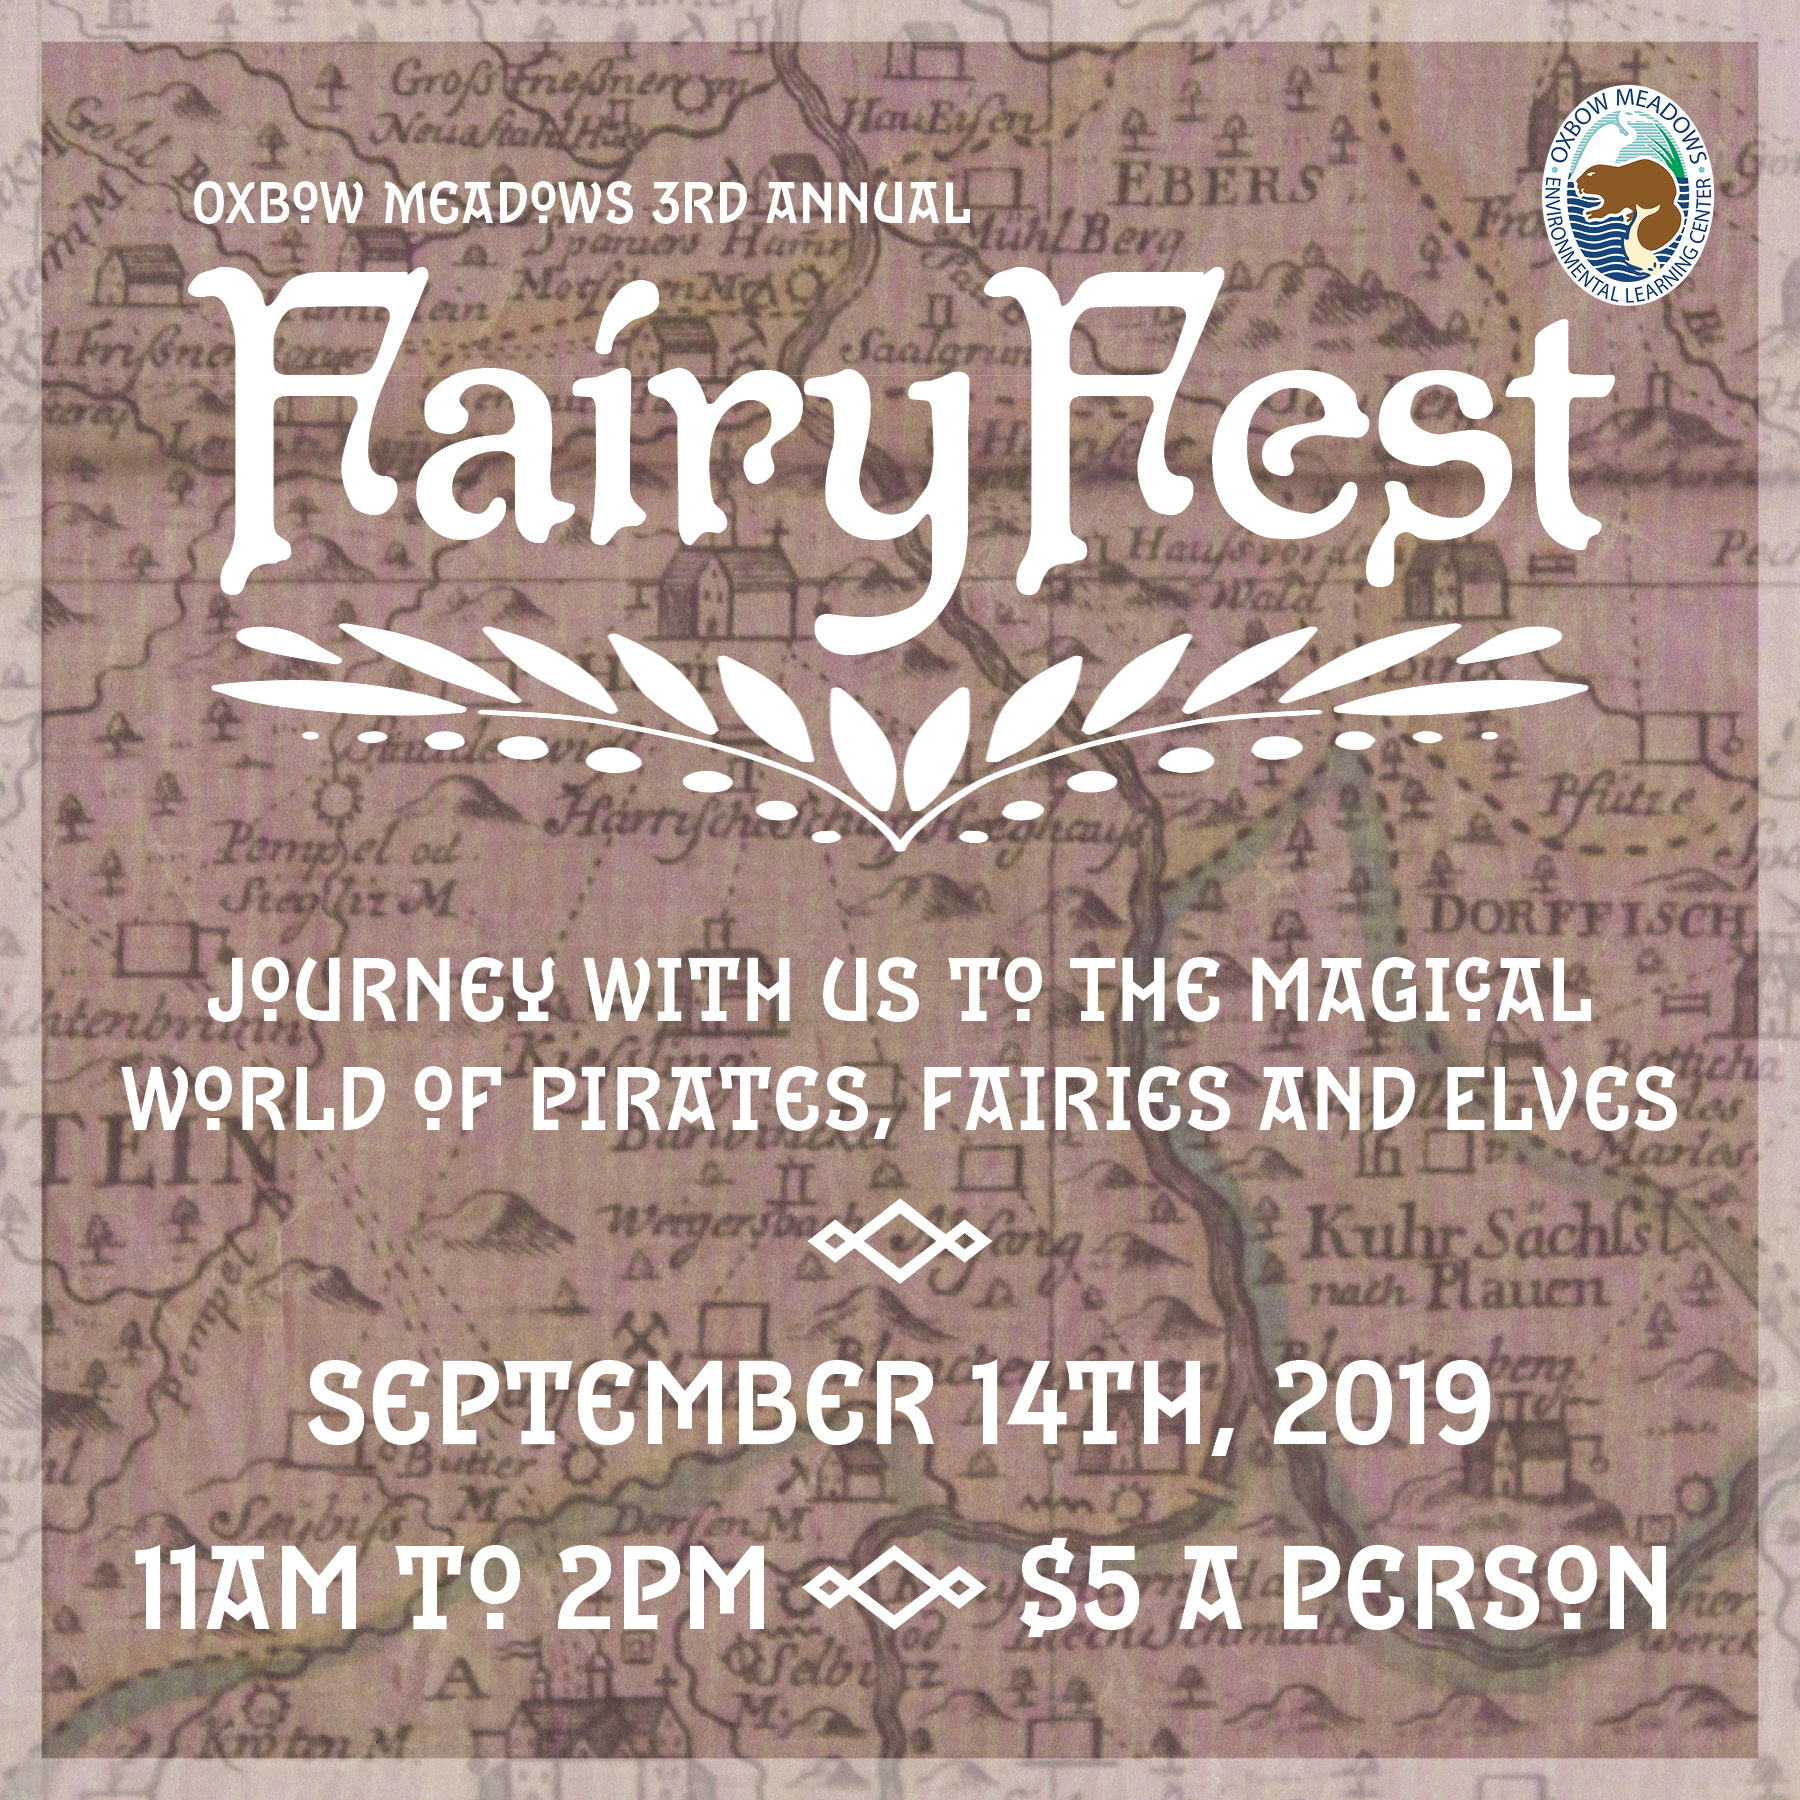 Fairy Fest at Oxbow Meadows